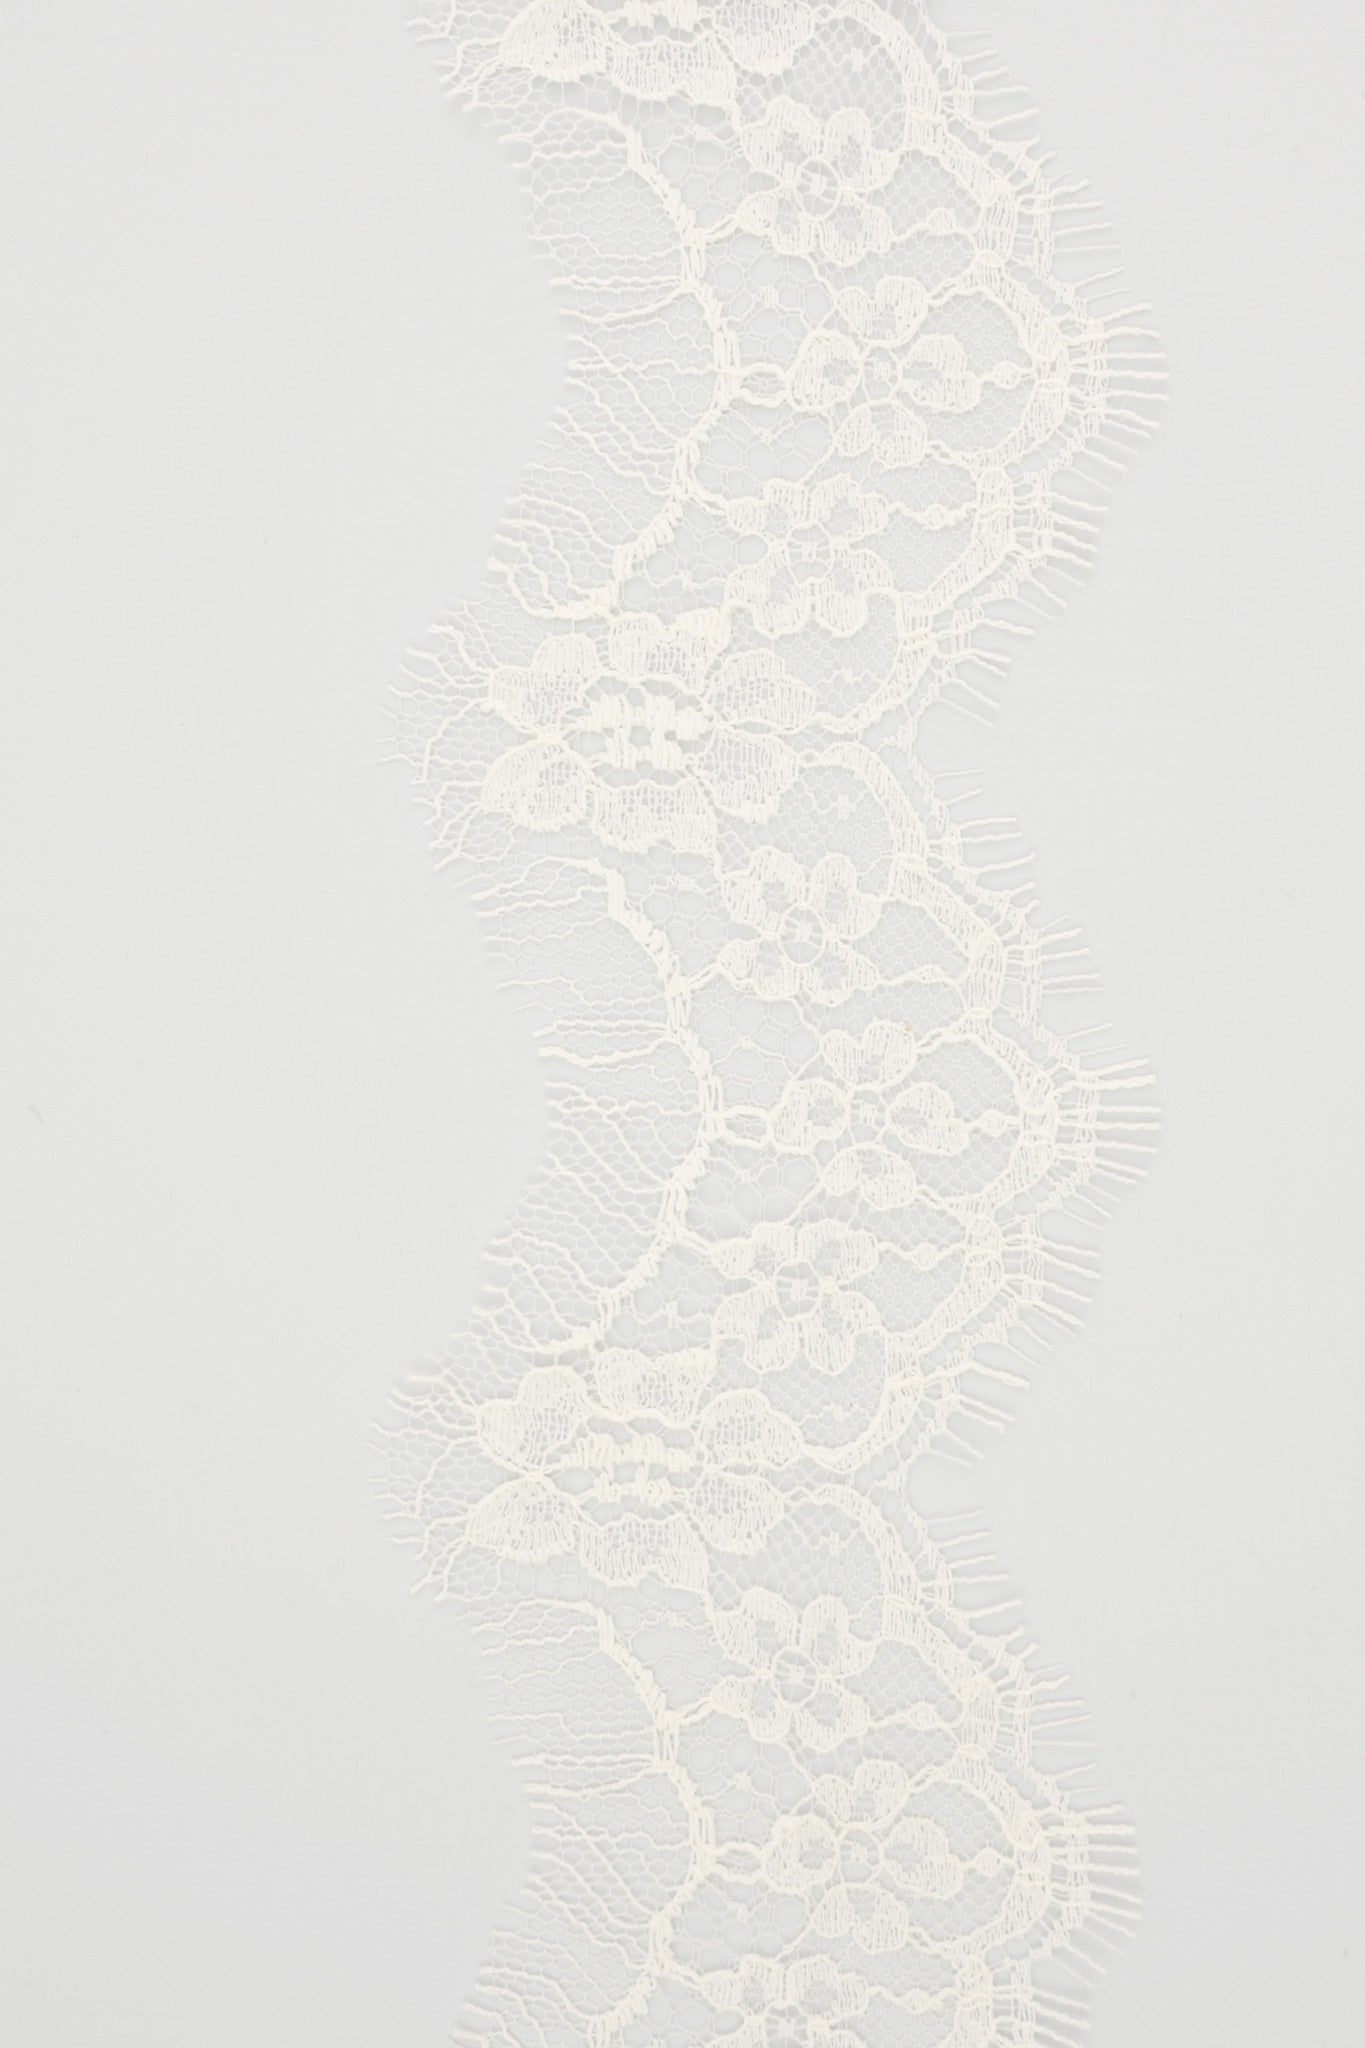 bespoke lace option for veils